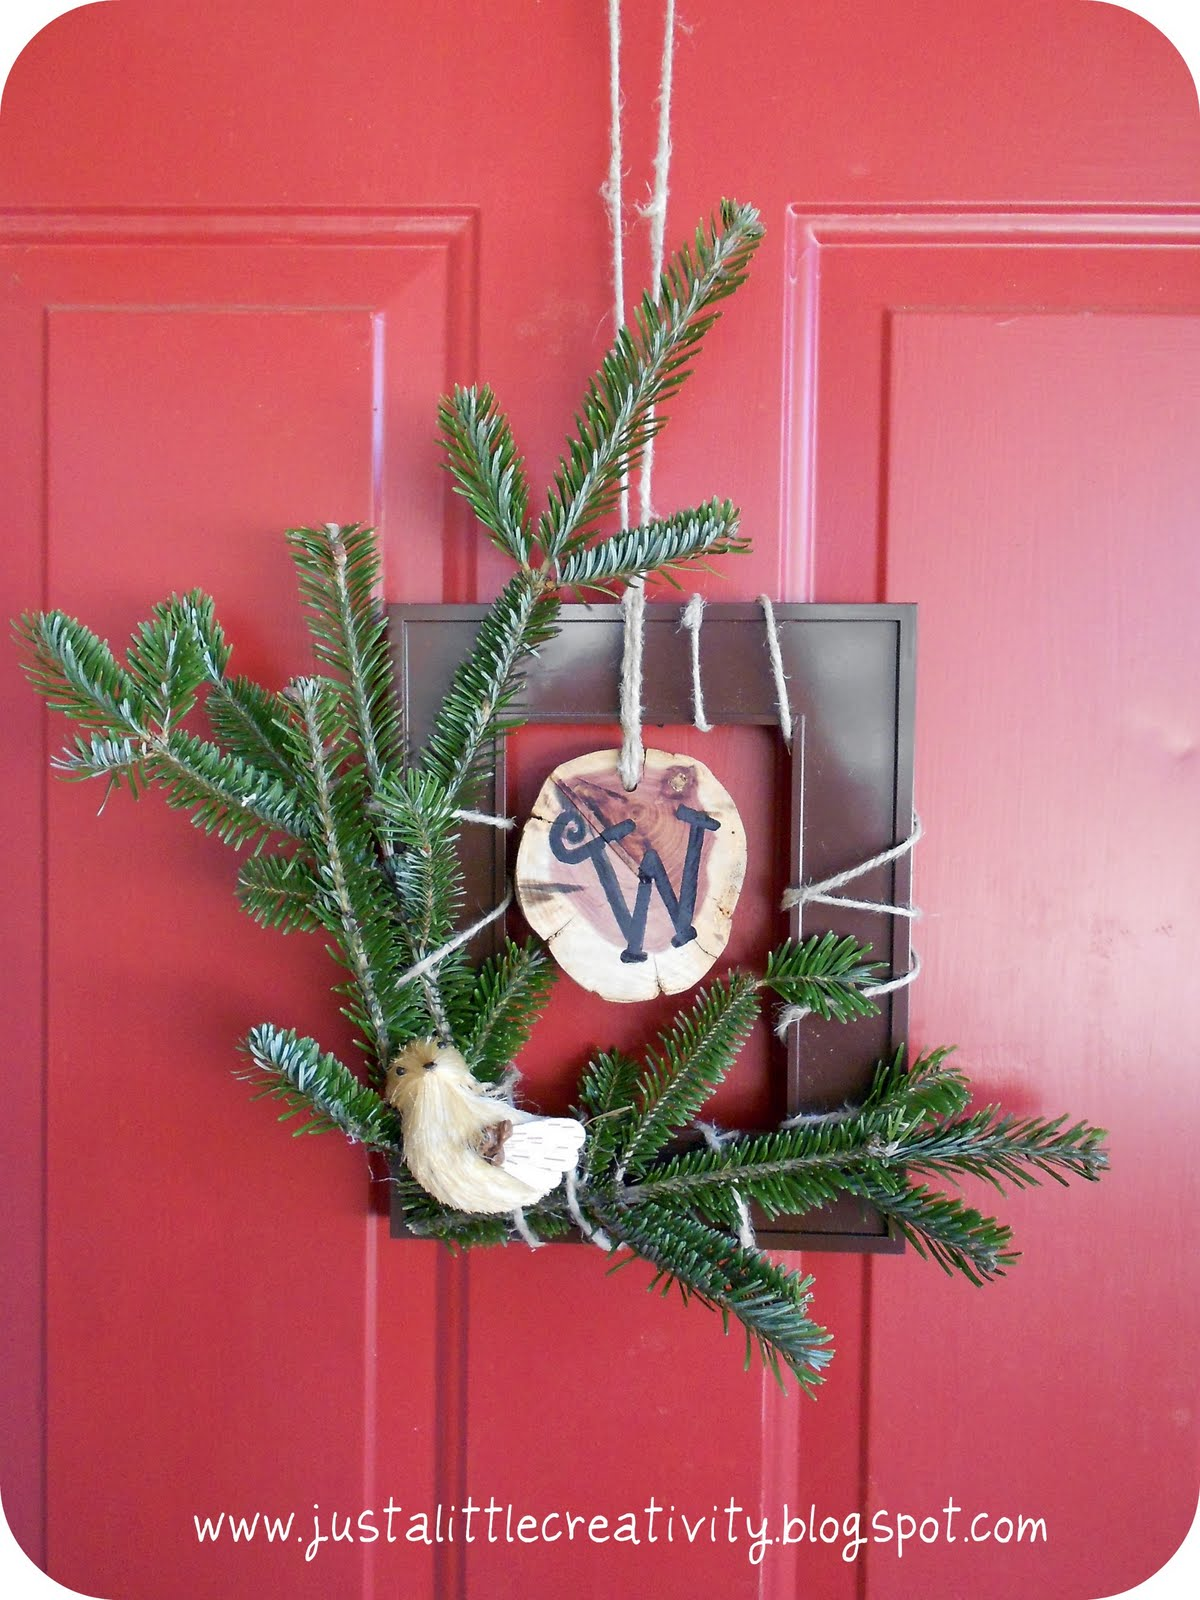 Rustic Winter Frame Initial Wreath Diy Crafting With Leftover Christmas Items